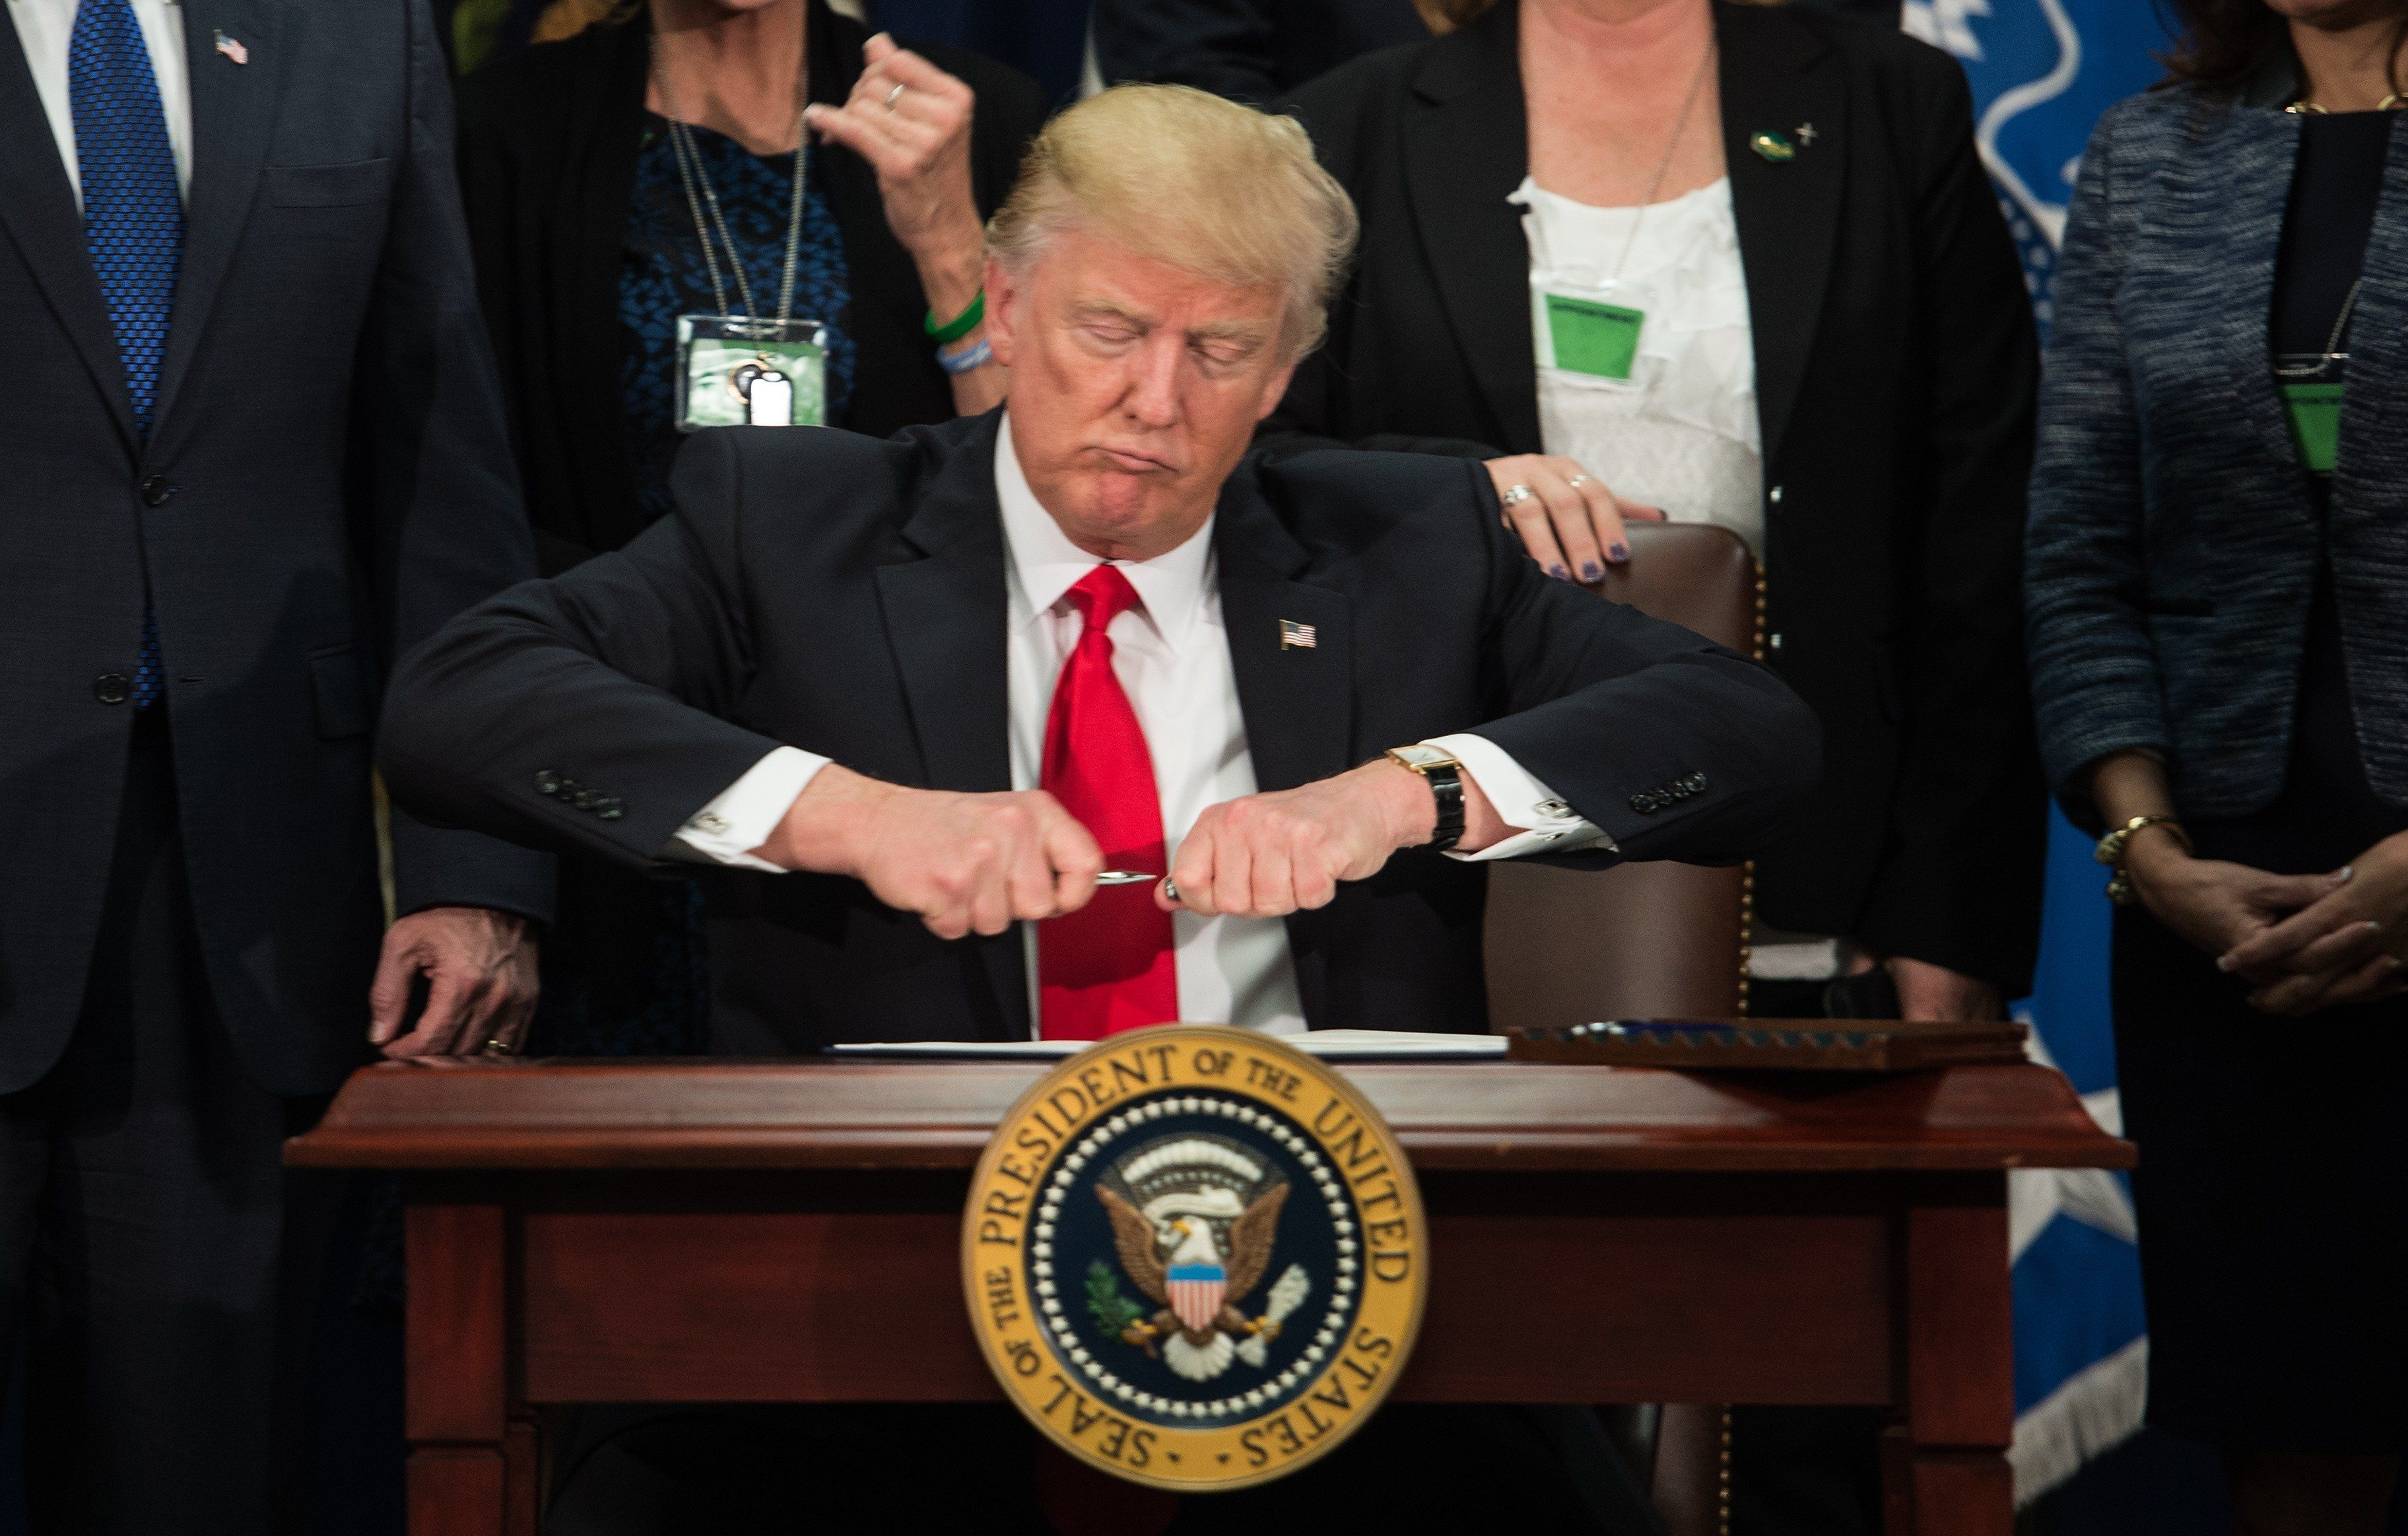 US President Donald Trump takes the cap off a pen to sign an executive order to start the Mexico border wall project at the Department of Homeland Security facility in Washington, DC, on January 25, 2017. / AFP / NICHOLAS KAMM        (Photo credit should read NICHOLAS KAMM/AFP/Getty Images)